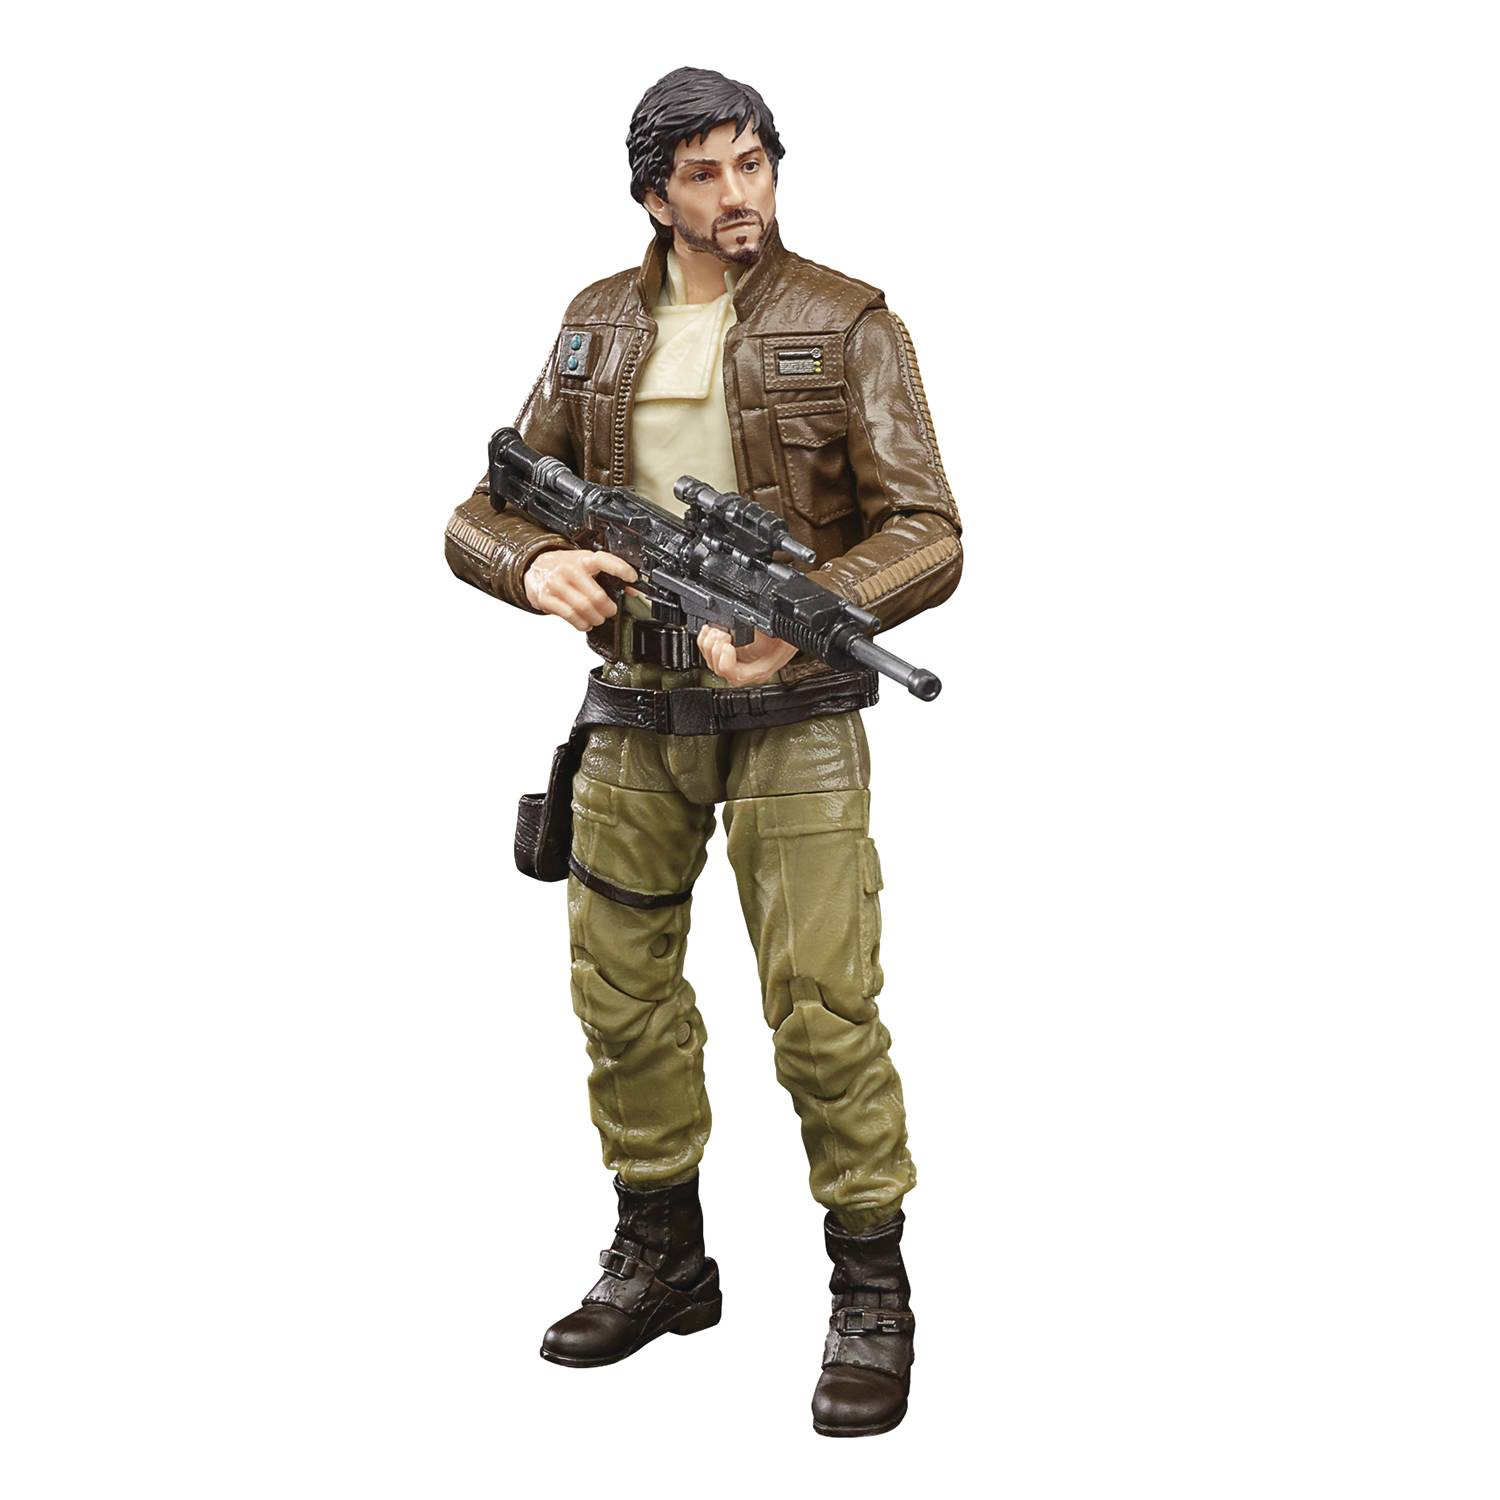 Star Wars - The Black Series - Rogue One - Cassian Andor Action Figure